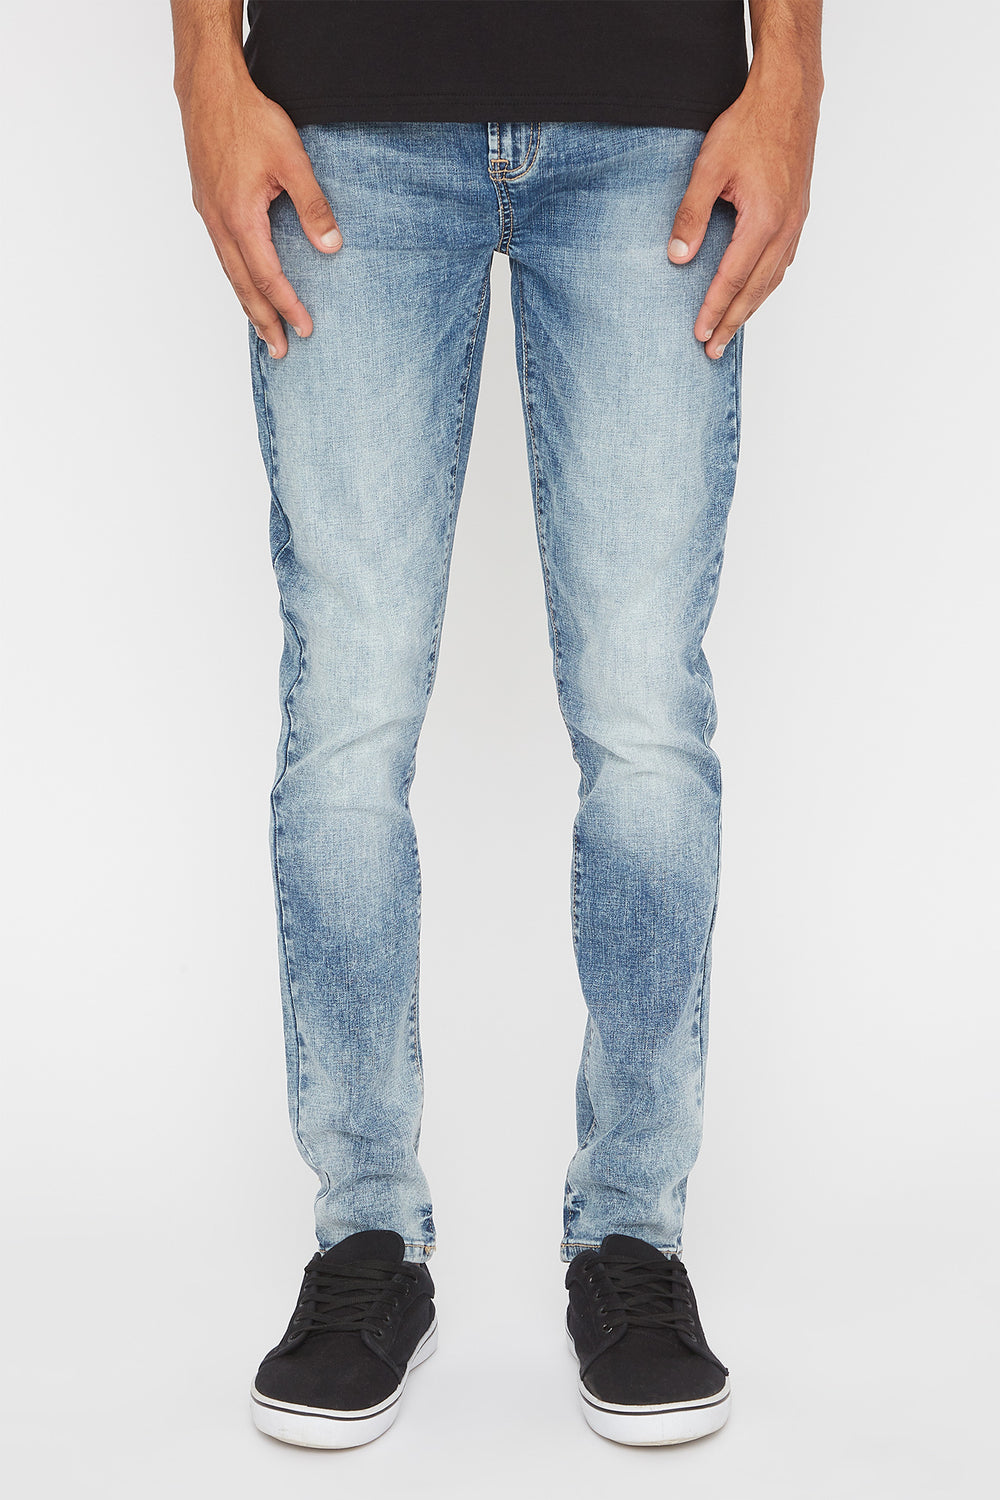 Zoo York Mens Stretch Skinny Jeans Light Blue